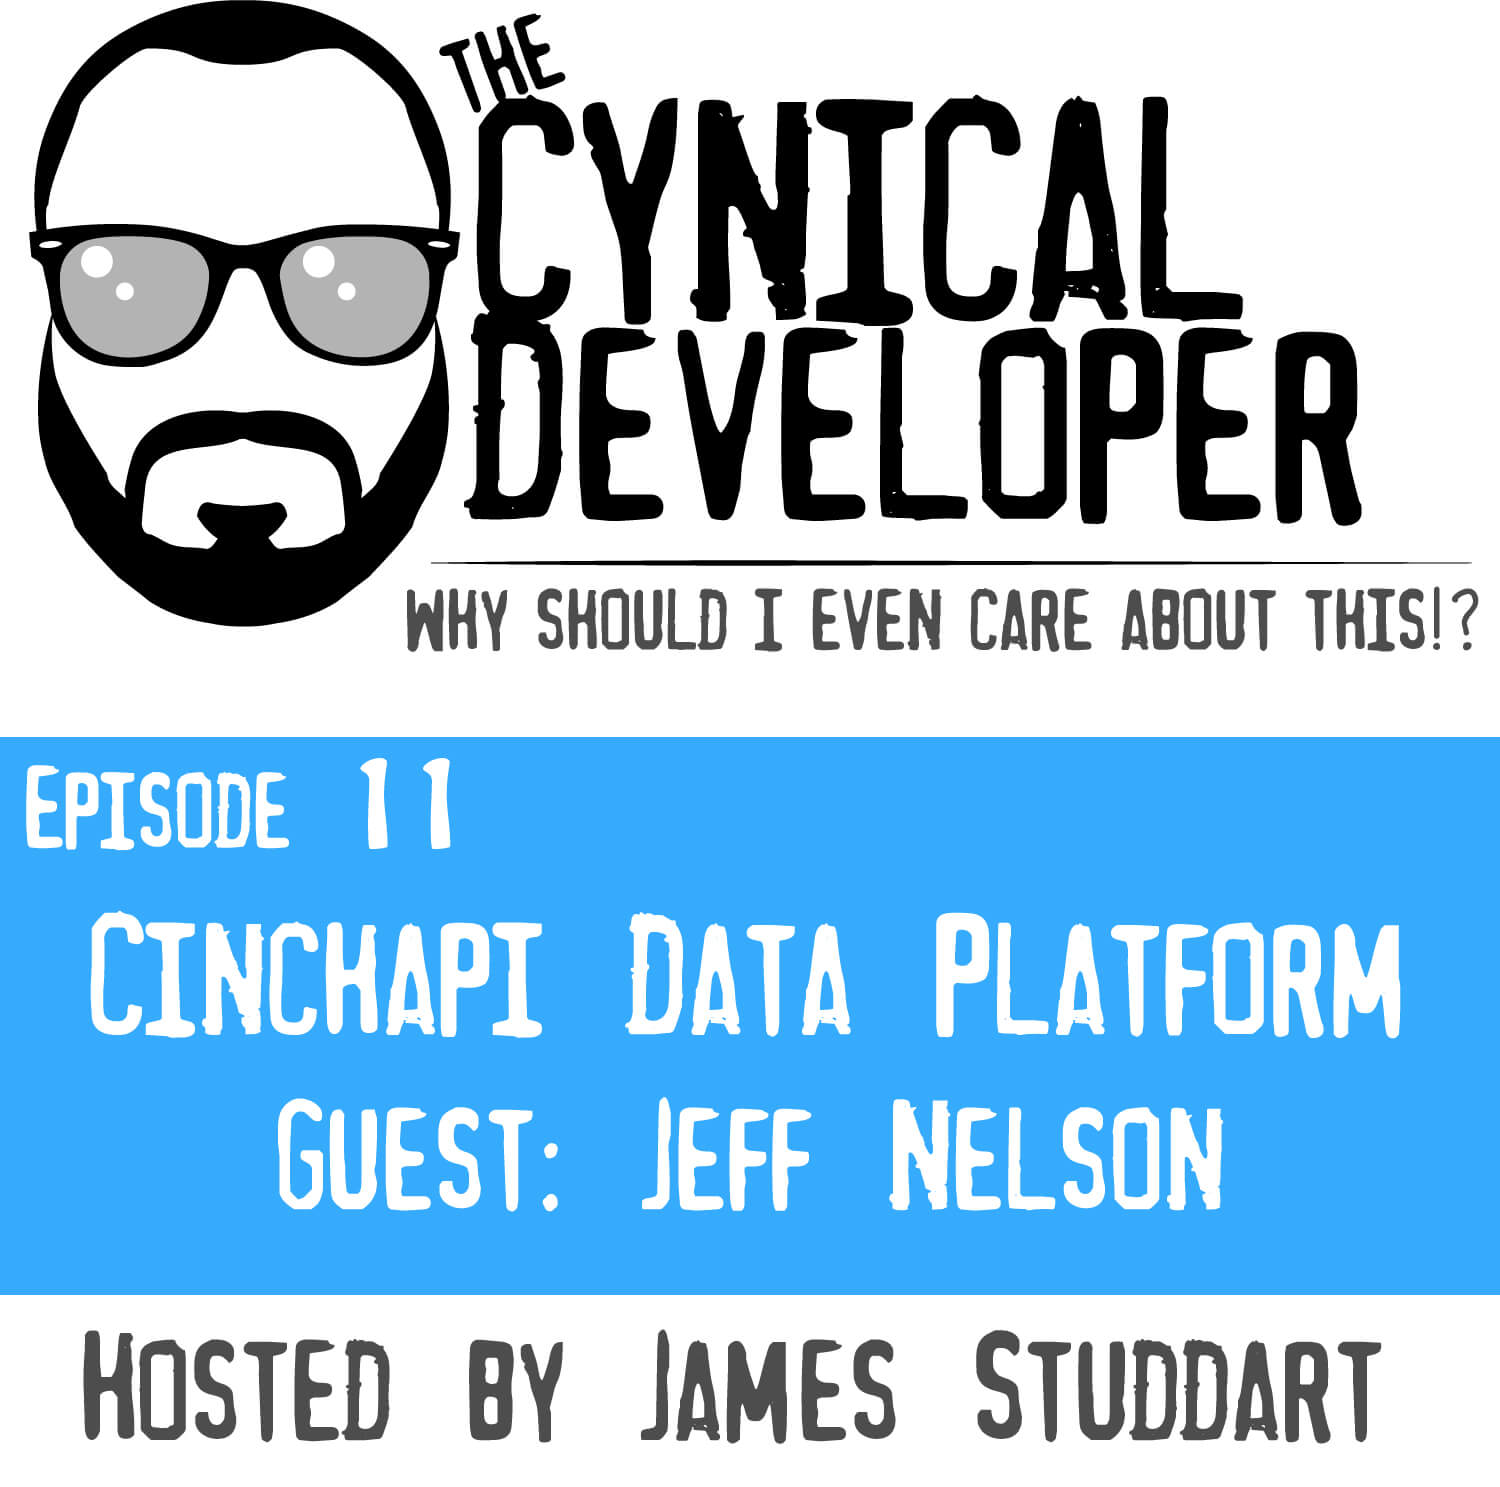 Episode 11 - Cinchapi Data Platform